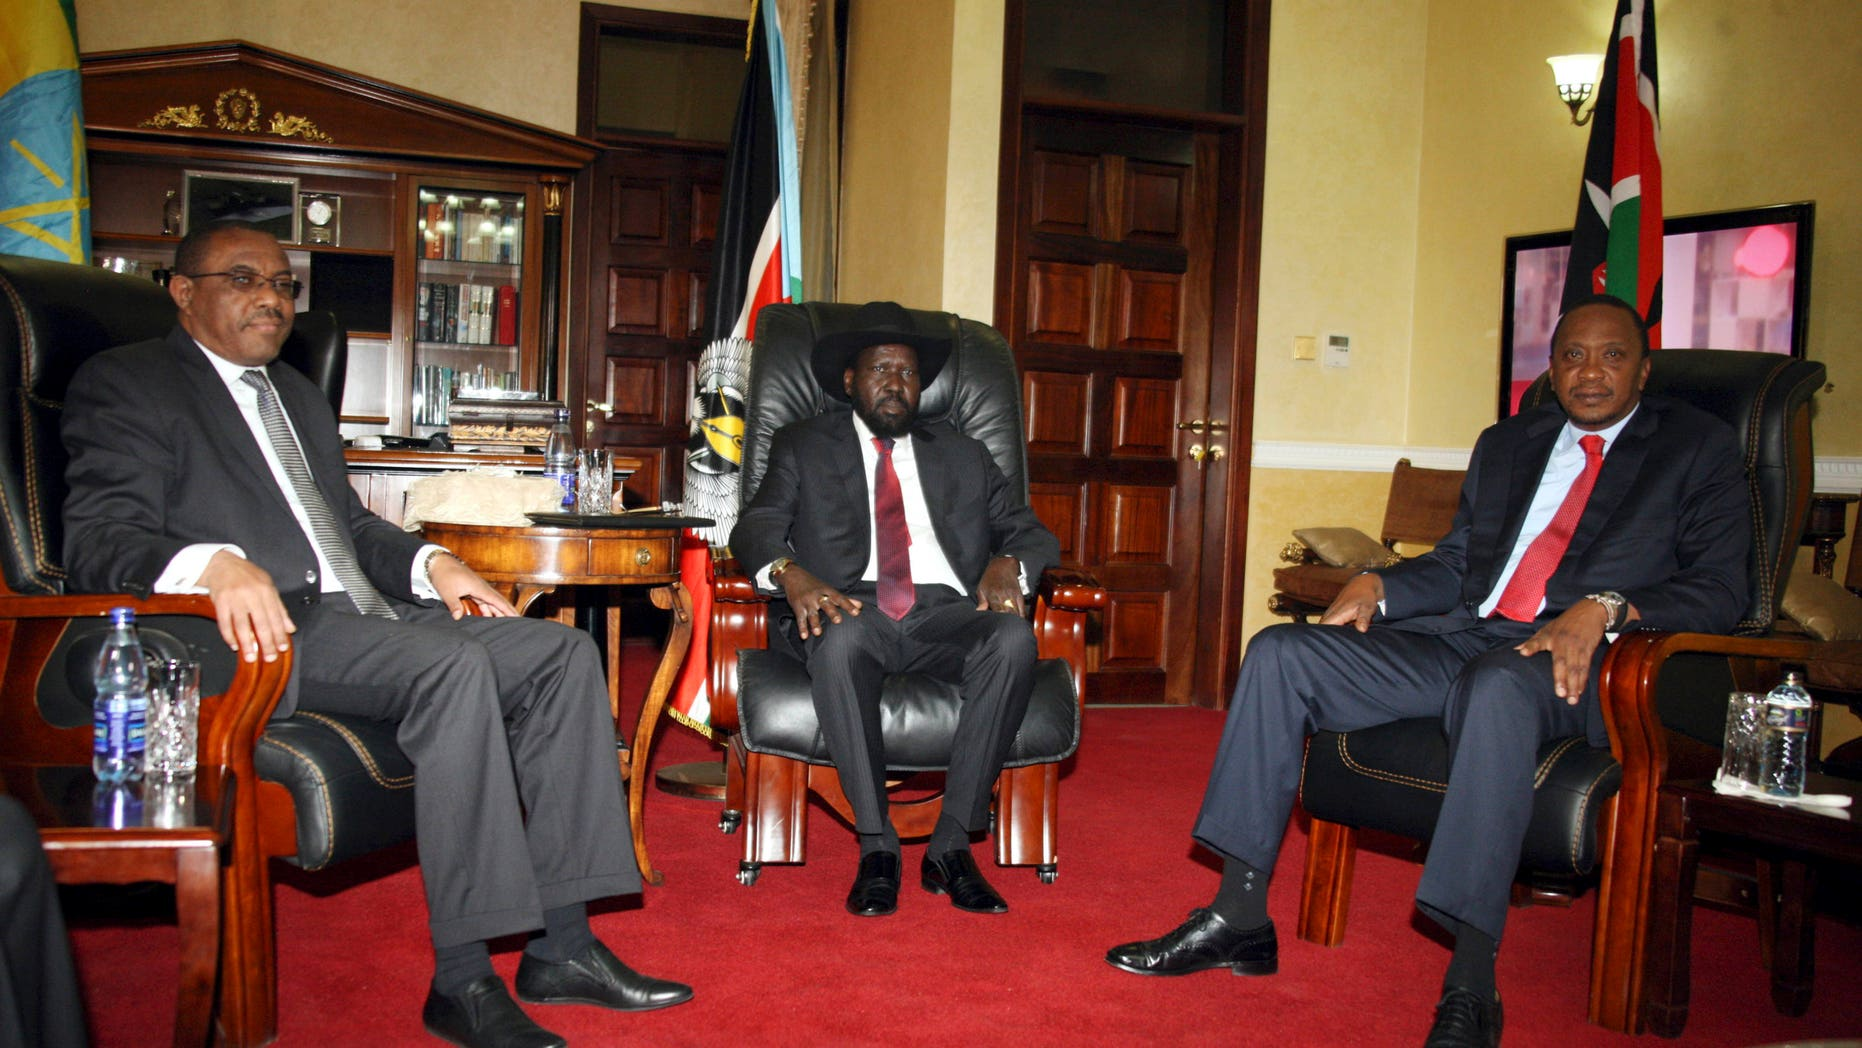 Dec. 26, 2013 - Ethiopian Prime Minister Hailemariam Desalegn, left, South Sudanese President Salva Kiir, center, and  Kenyan President Uhuru Kenyatta pose for photos before their meeting at State House in Juba, South Sudan. The leaders of Kenya and Ethiopia arrived Thursday to try to mediate between the country's president and the political rivals he accuses of attempting a coup that the government insists sparked violence threatening to destroy the world's newest country.